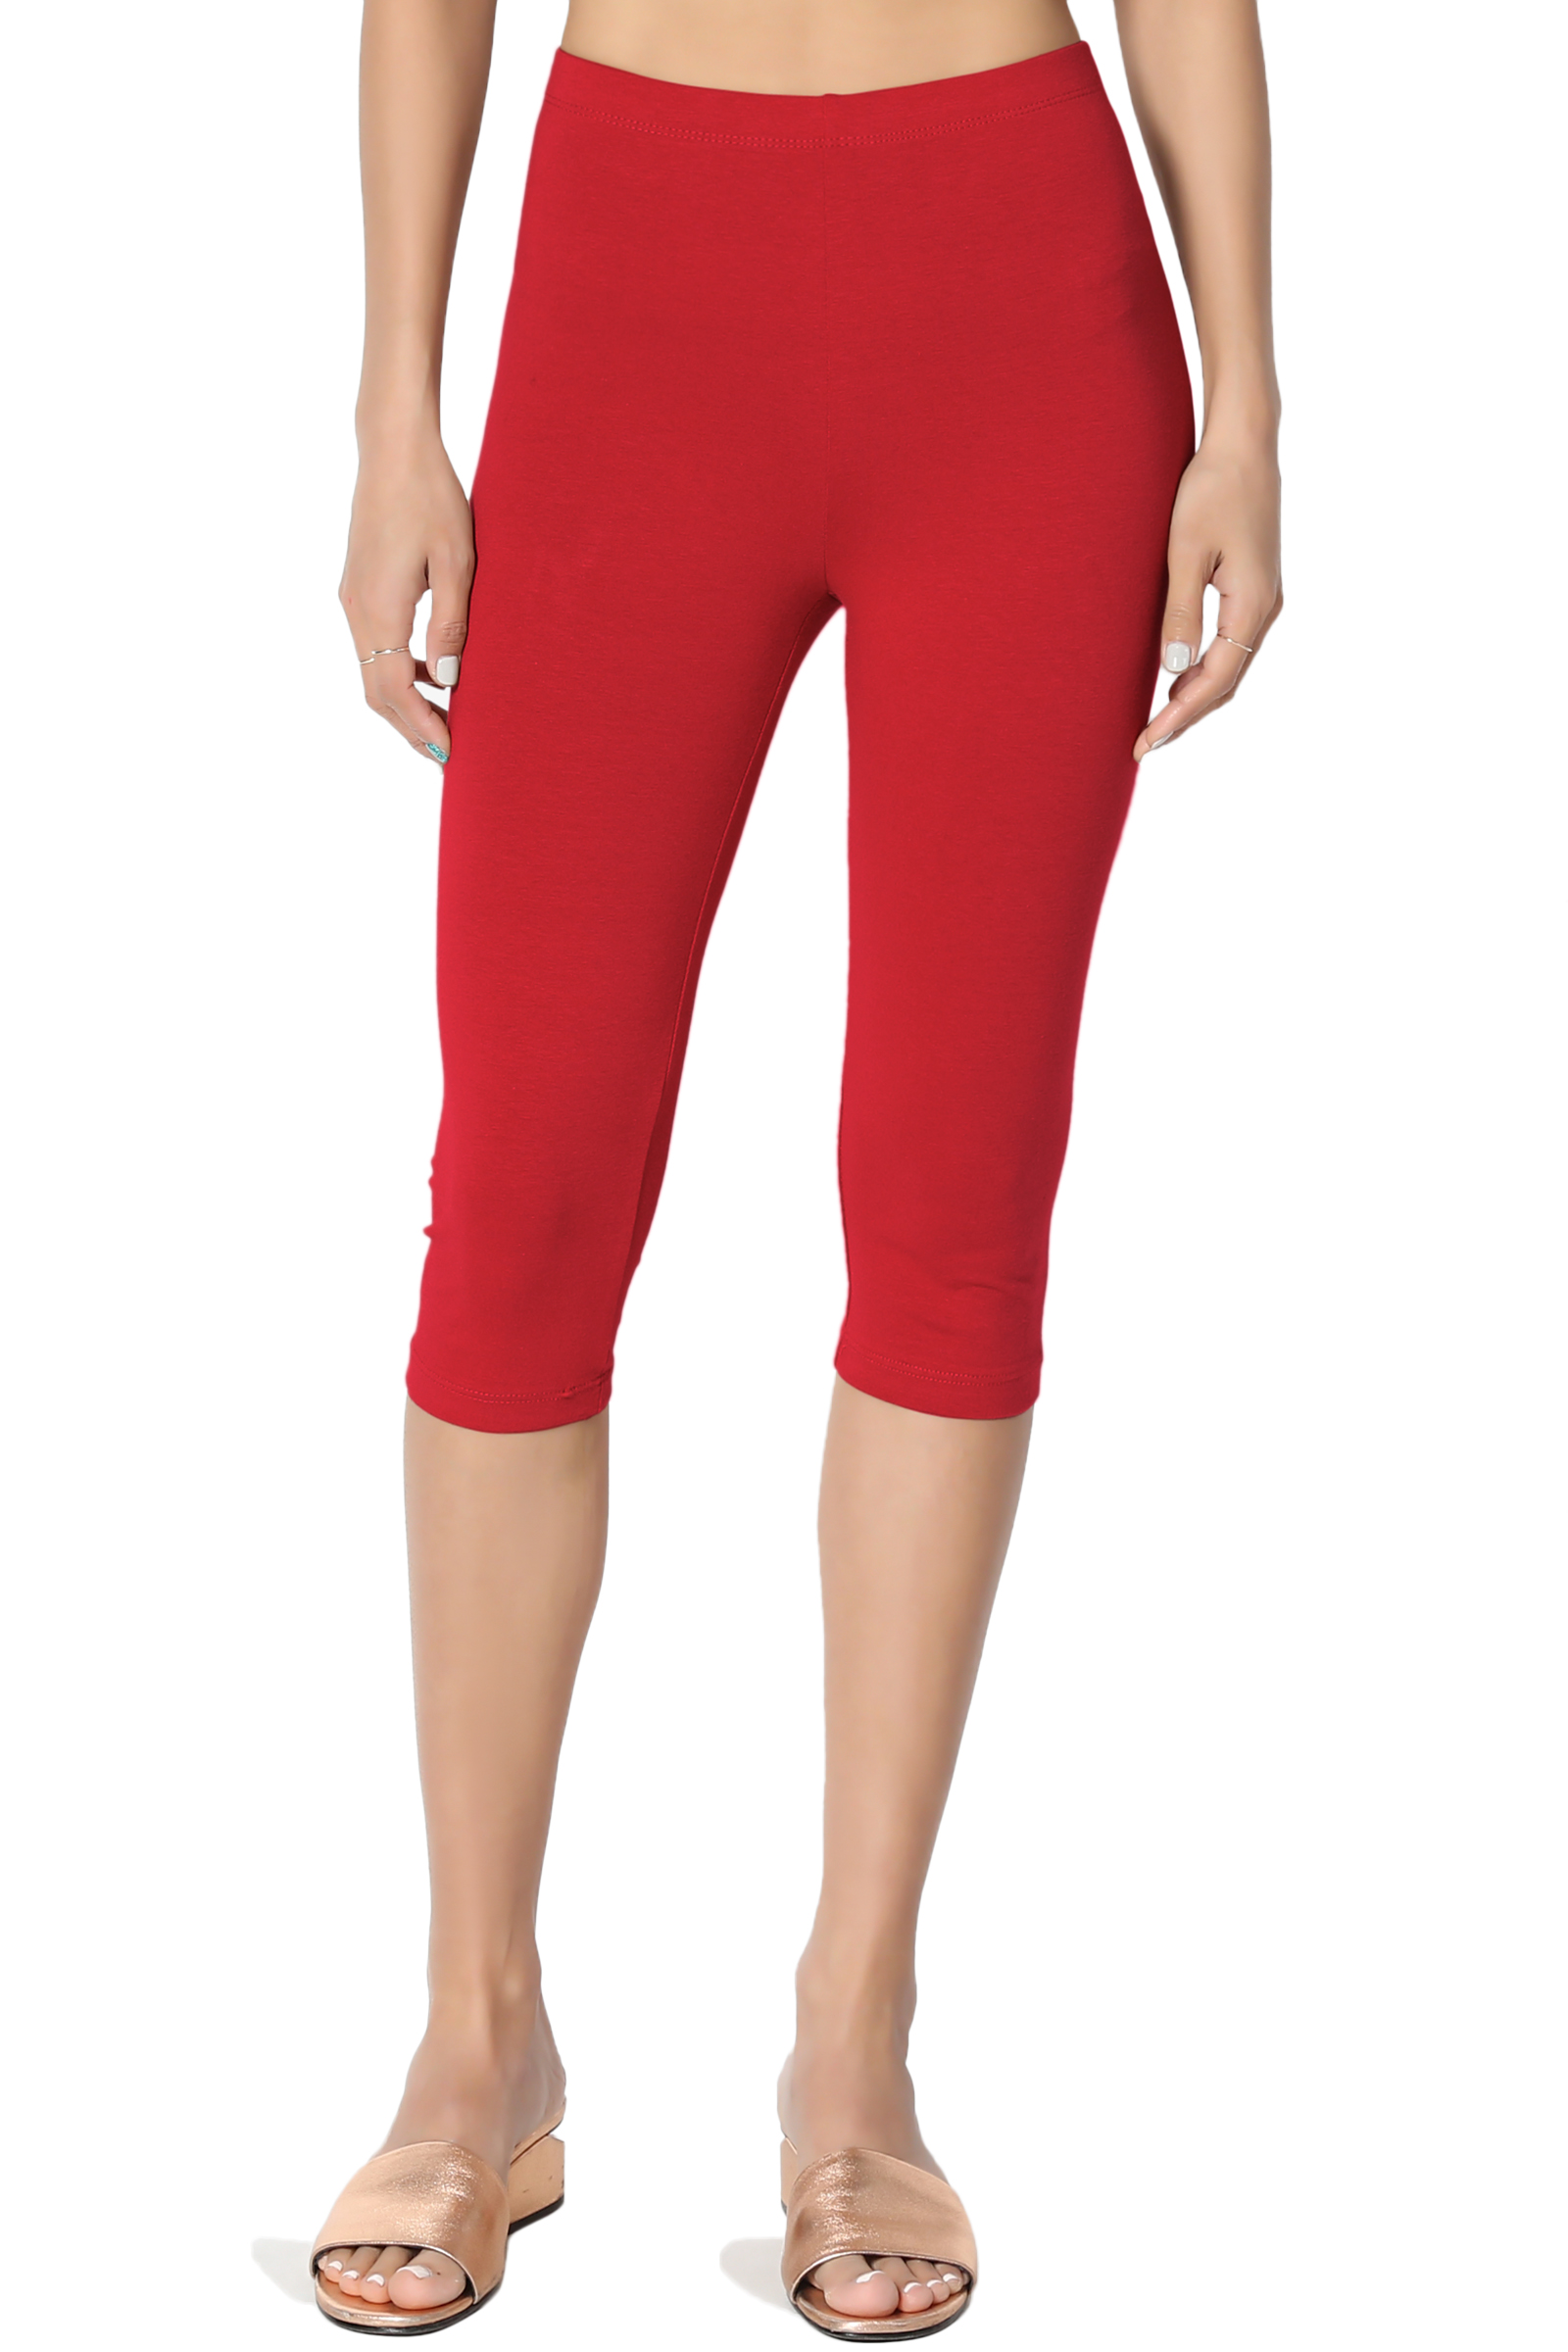 TheMogan Women's S~3X Basic Stretch Cotton Span Below Knee Length Capri Leggings